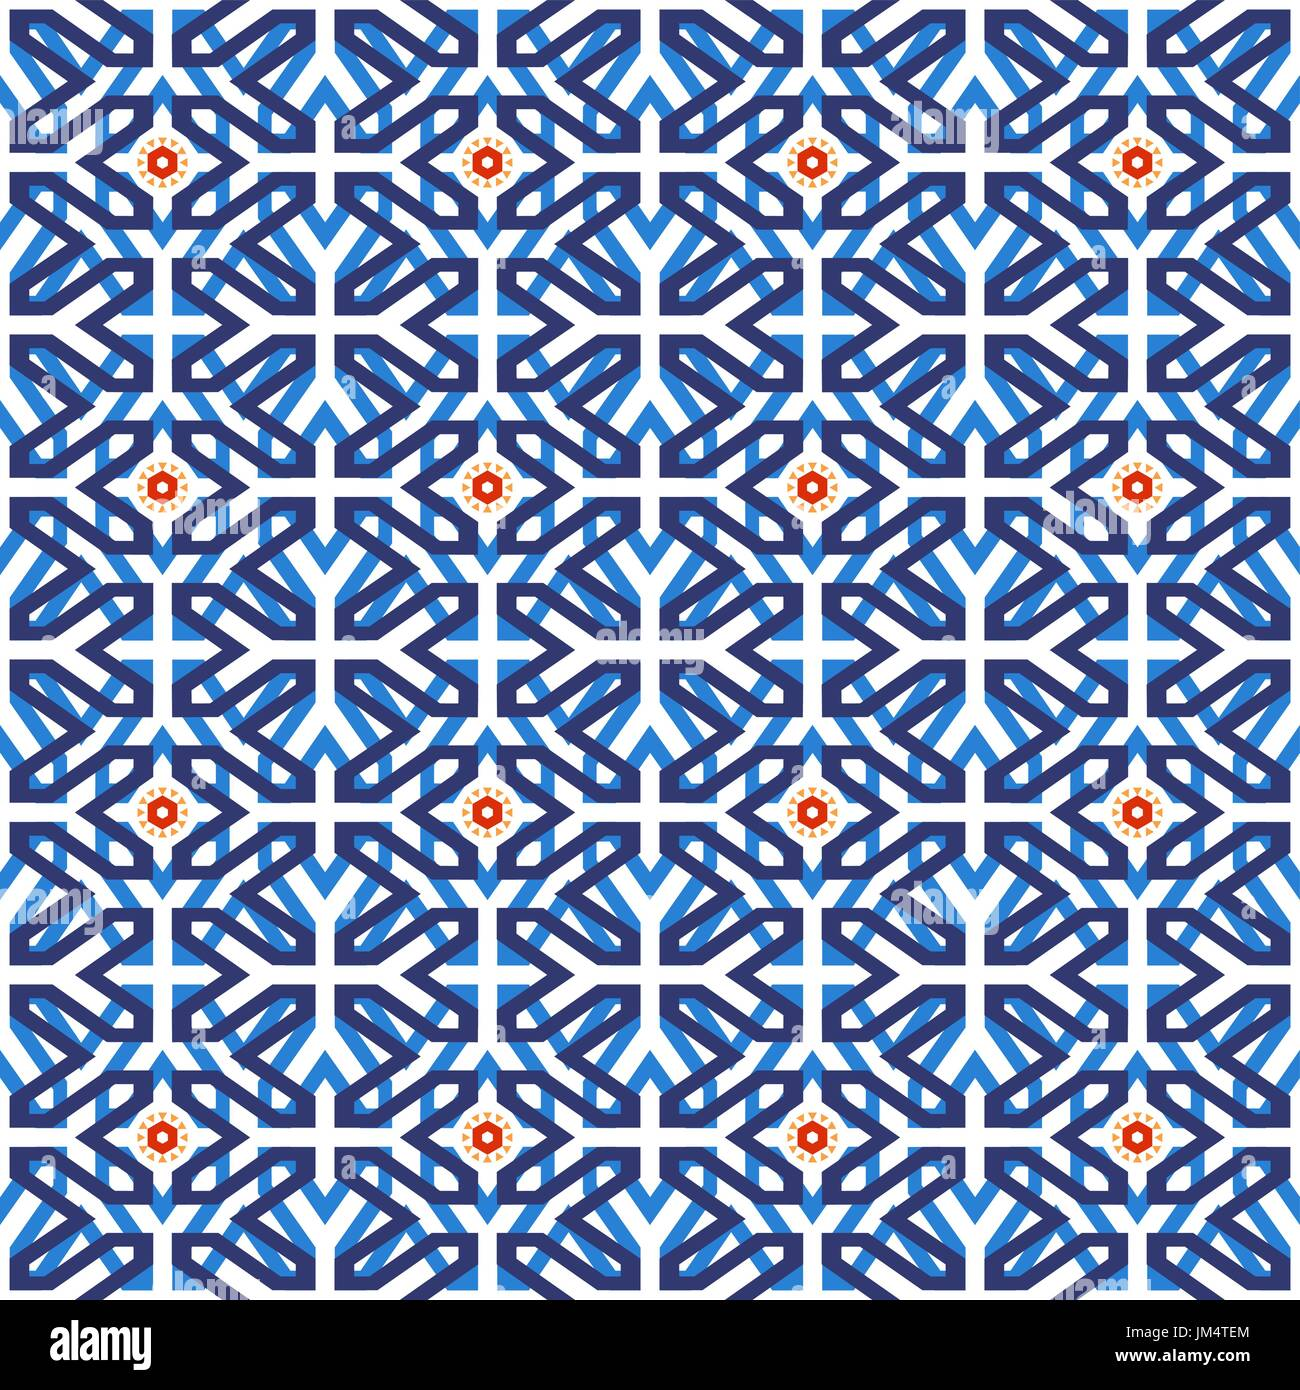 Lovely 16X32 Ceiling Tiles Tall 18 Inch Floor Tile Round 18 X 18 Ceramic Tile 20 X 20 Floor Tile Patterns Youthful 24 X 24 Ceiling Tiles White3 X 12 Subway Tile Traditional Arabic Ceramic Mosaic Tile Seamless Pattern Based On ..